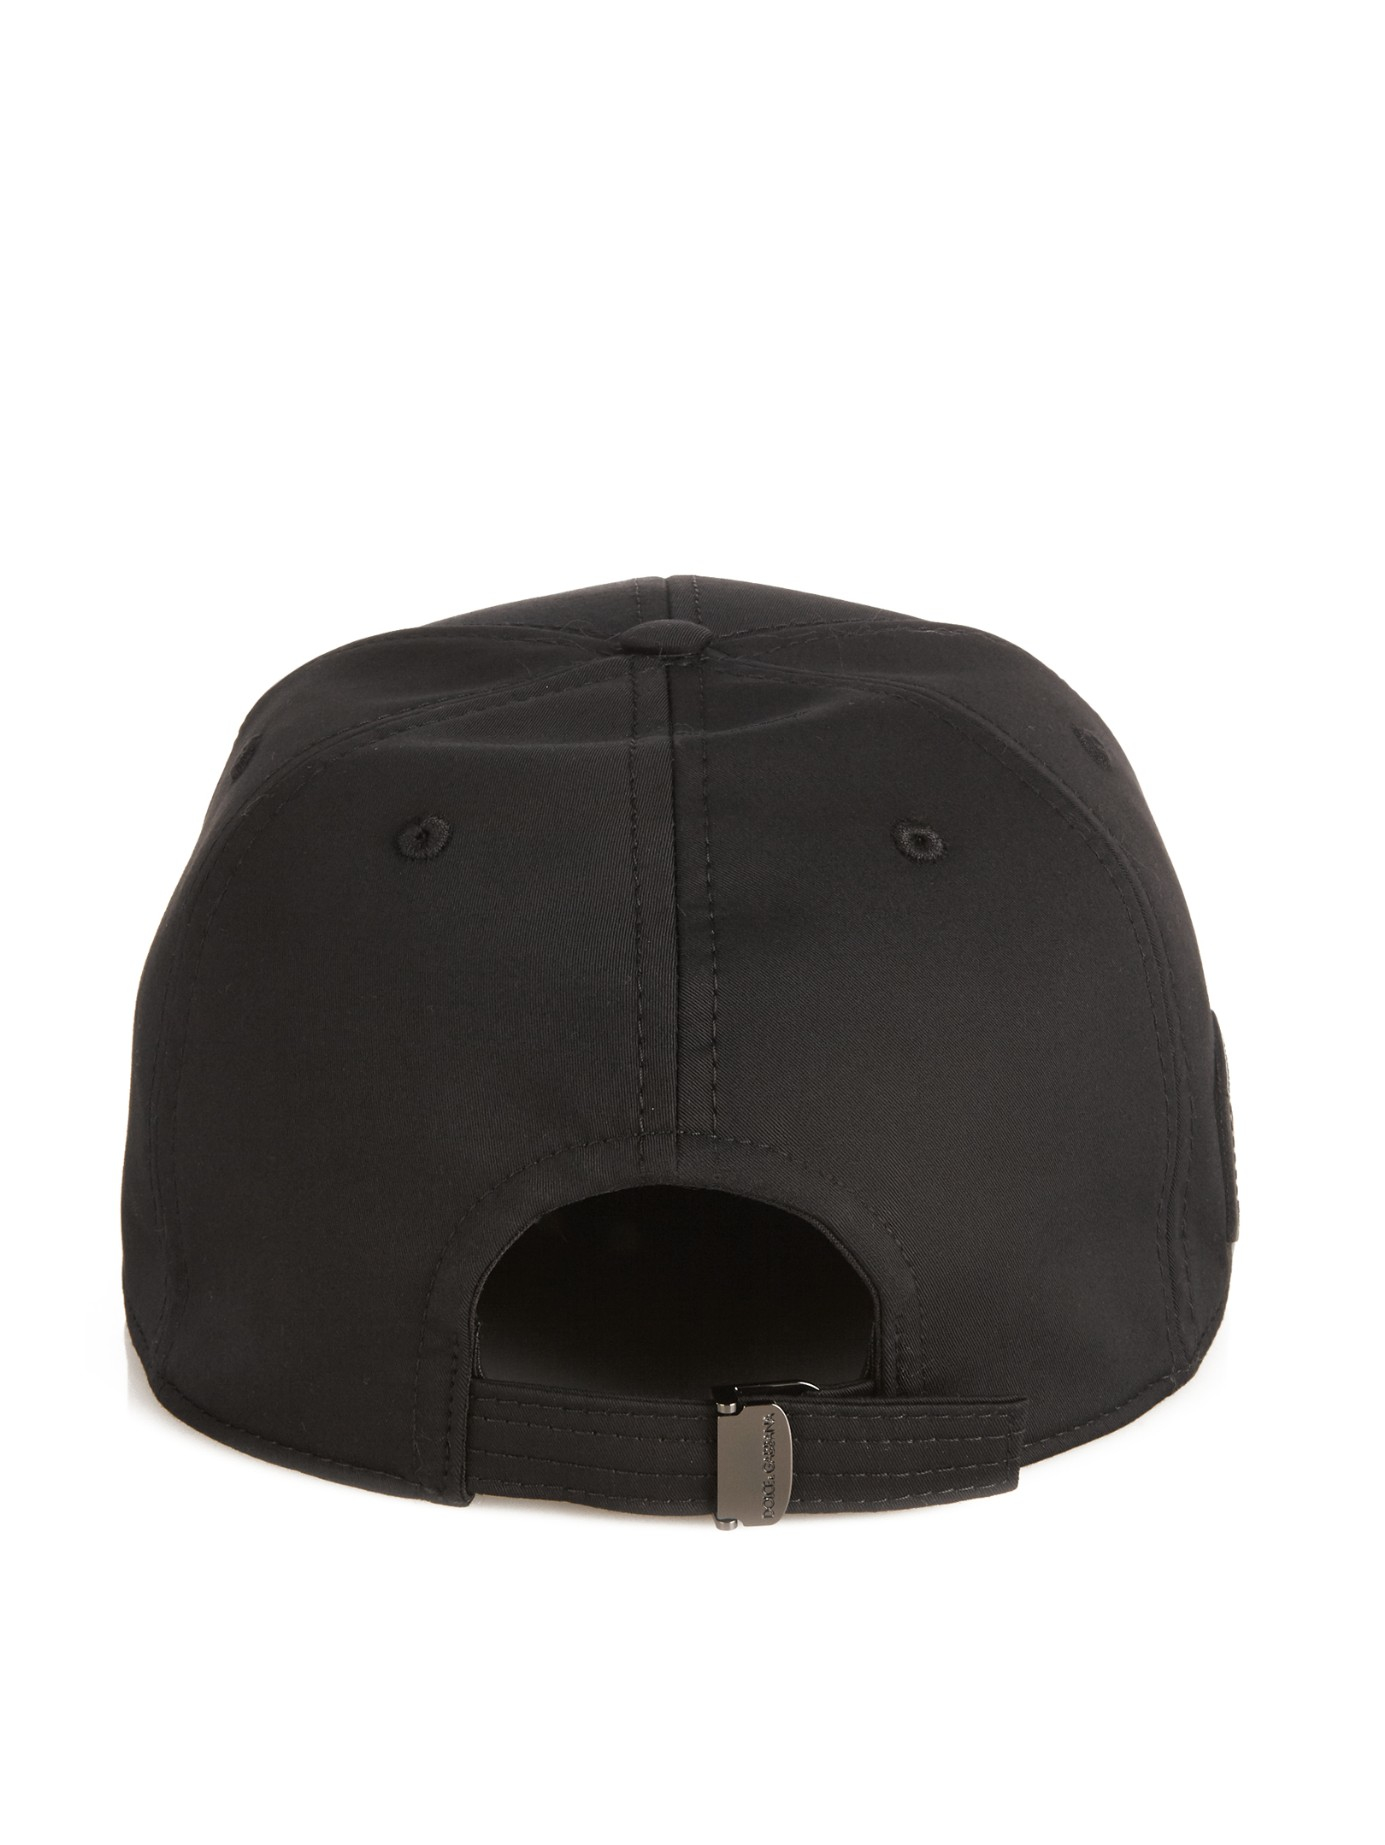 Lyst - Dolce   Gabbana Logo-plaque Baseball Hat in Black for Men 3b6a7c2ff6e